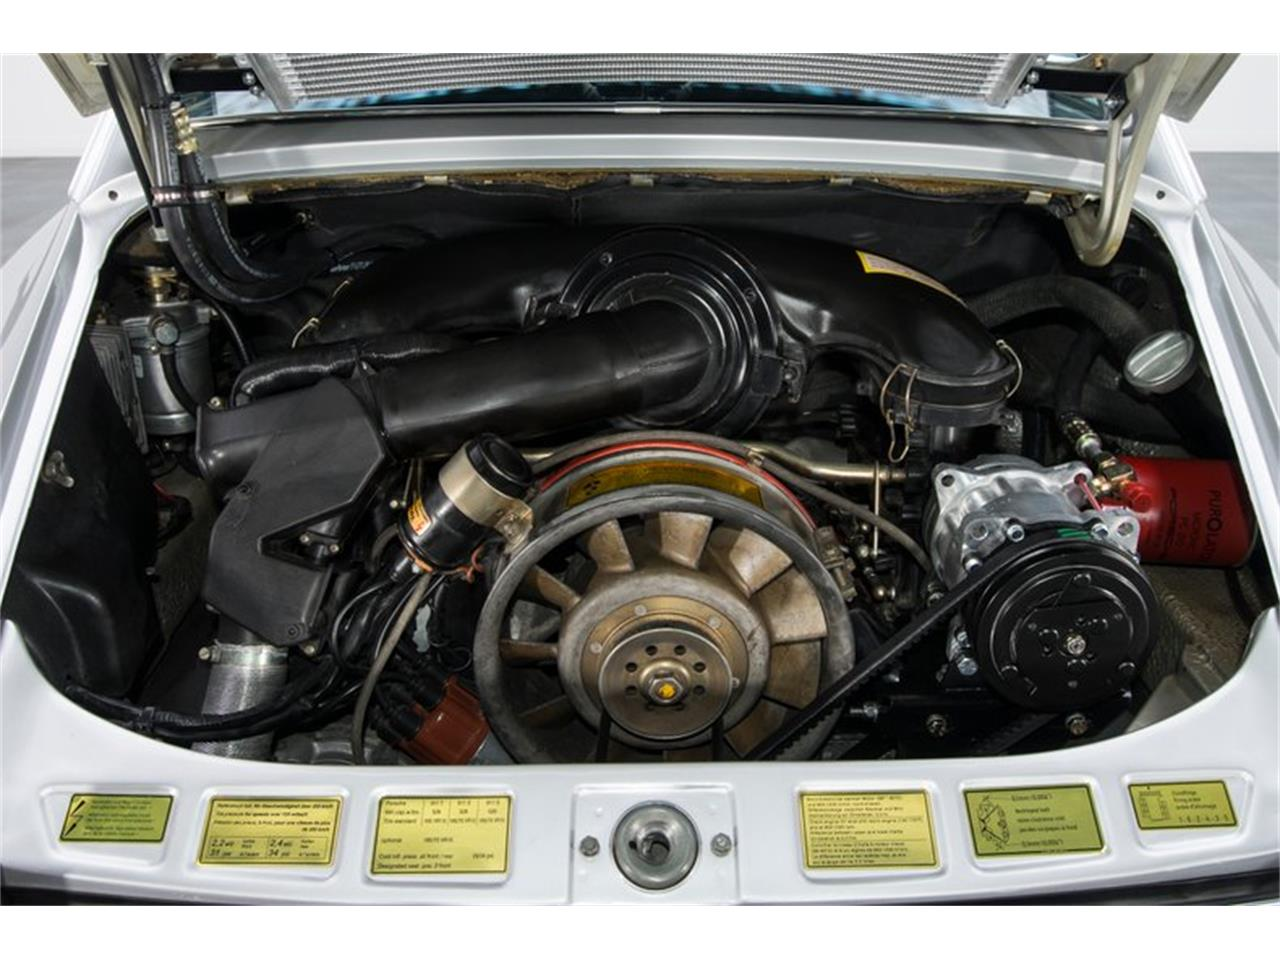 Large Picture of 1973 Porsche 911 located in North Carolina - $349,900.00 - MFCY